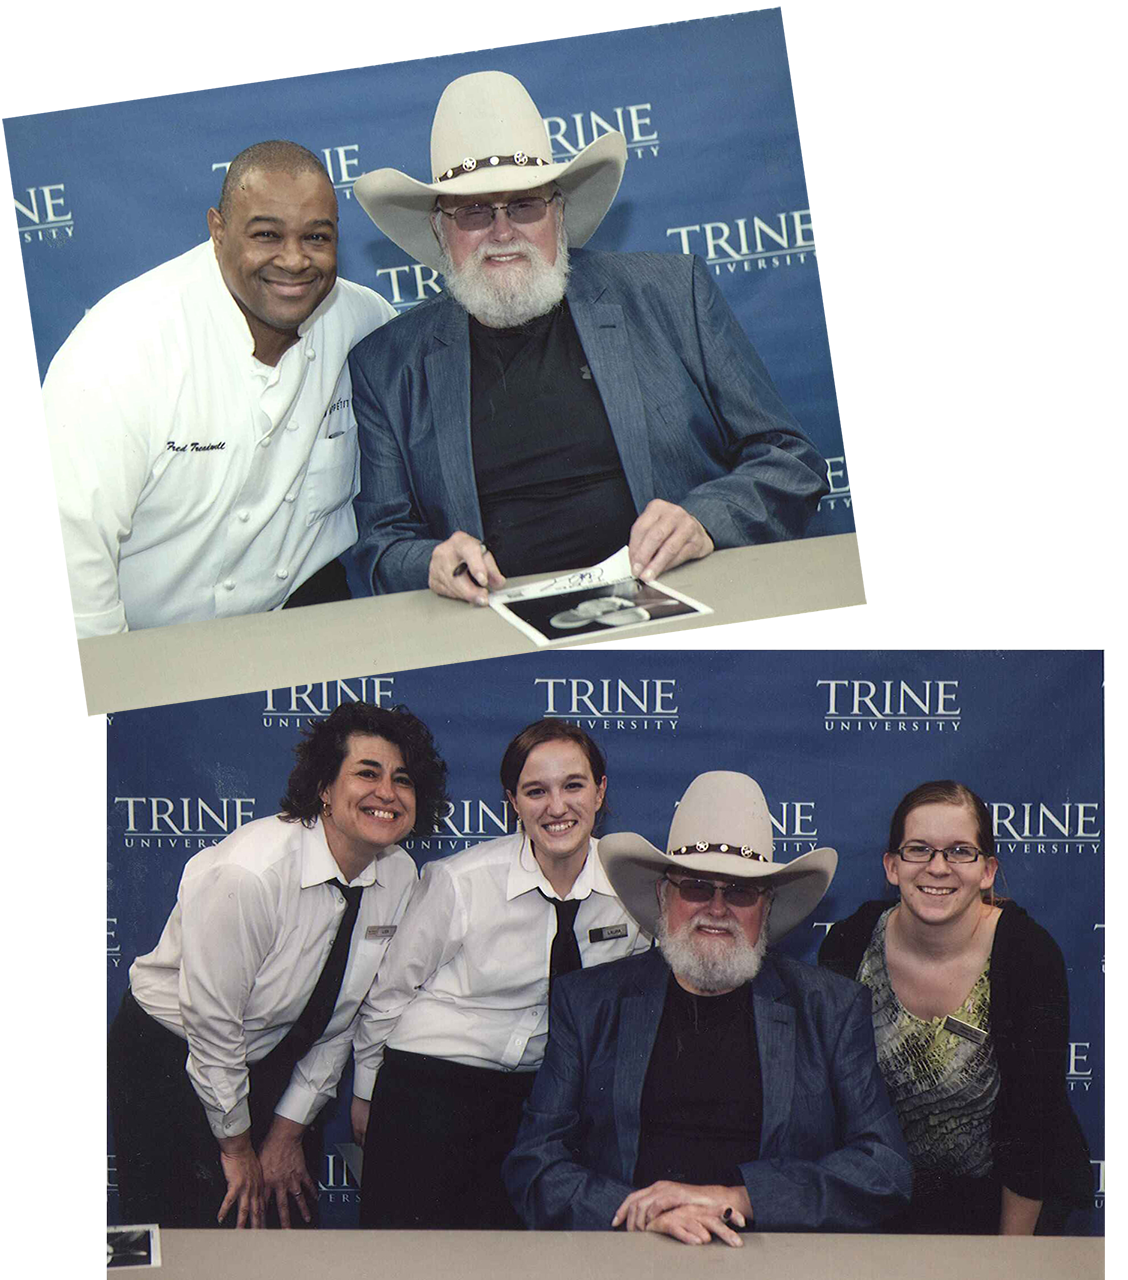 Top: Sous Chef Fred Treadwell with country legend Charlie Daniels Bottom: Catering Attendants Lisa Pardue and Laura Lepley, country legend Charlie Daniels, and Catering Manager Danielle Beer